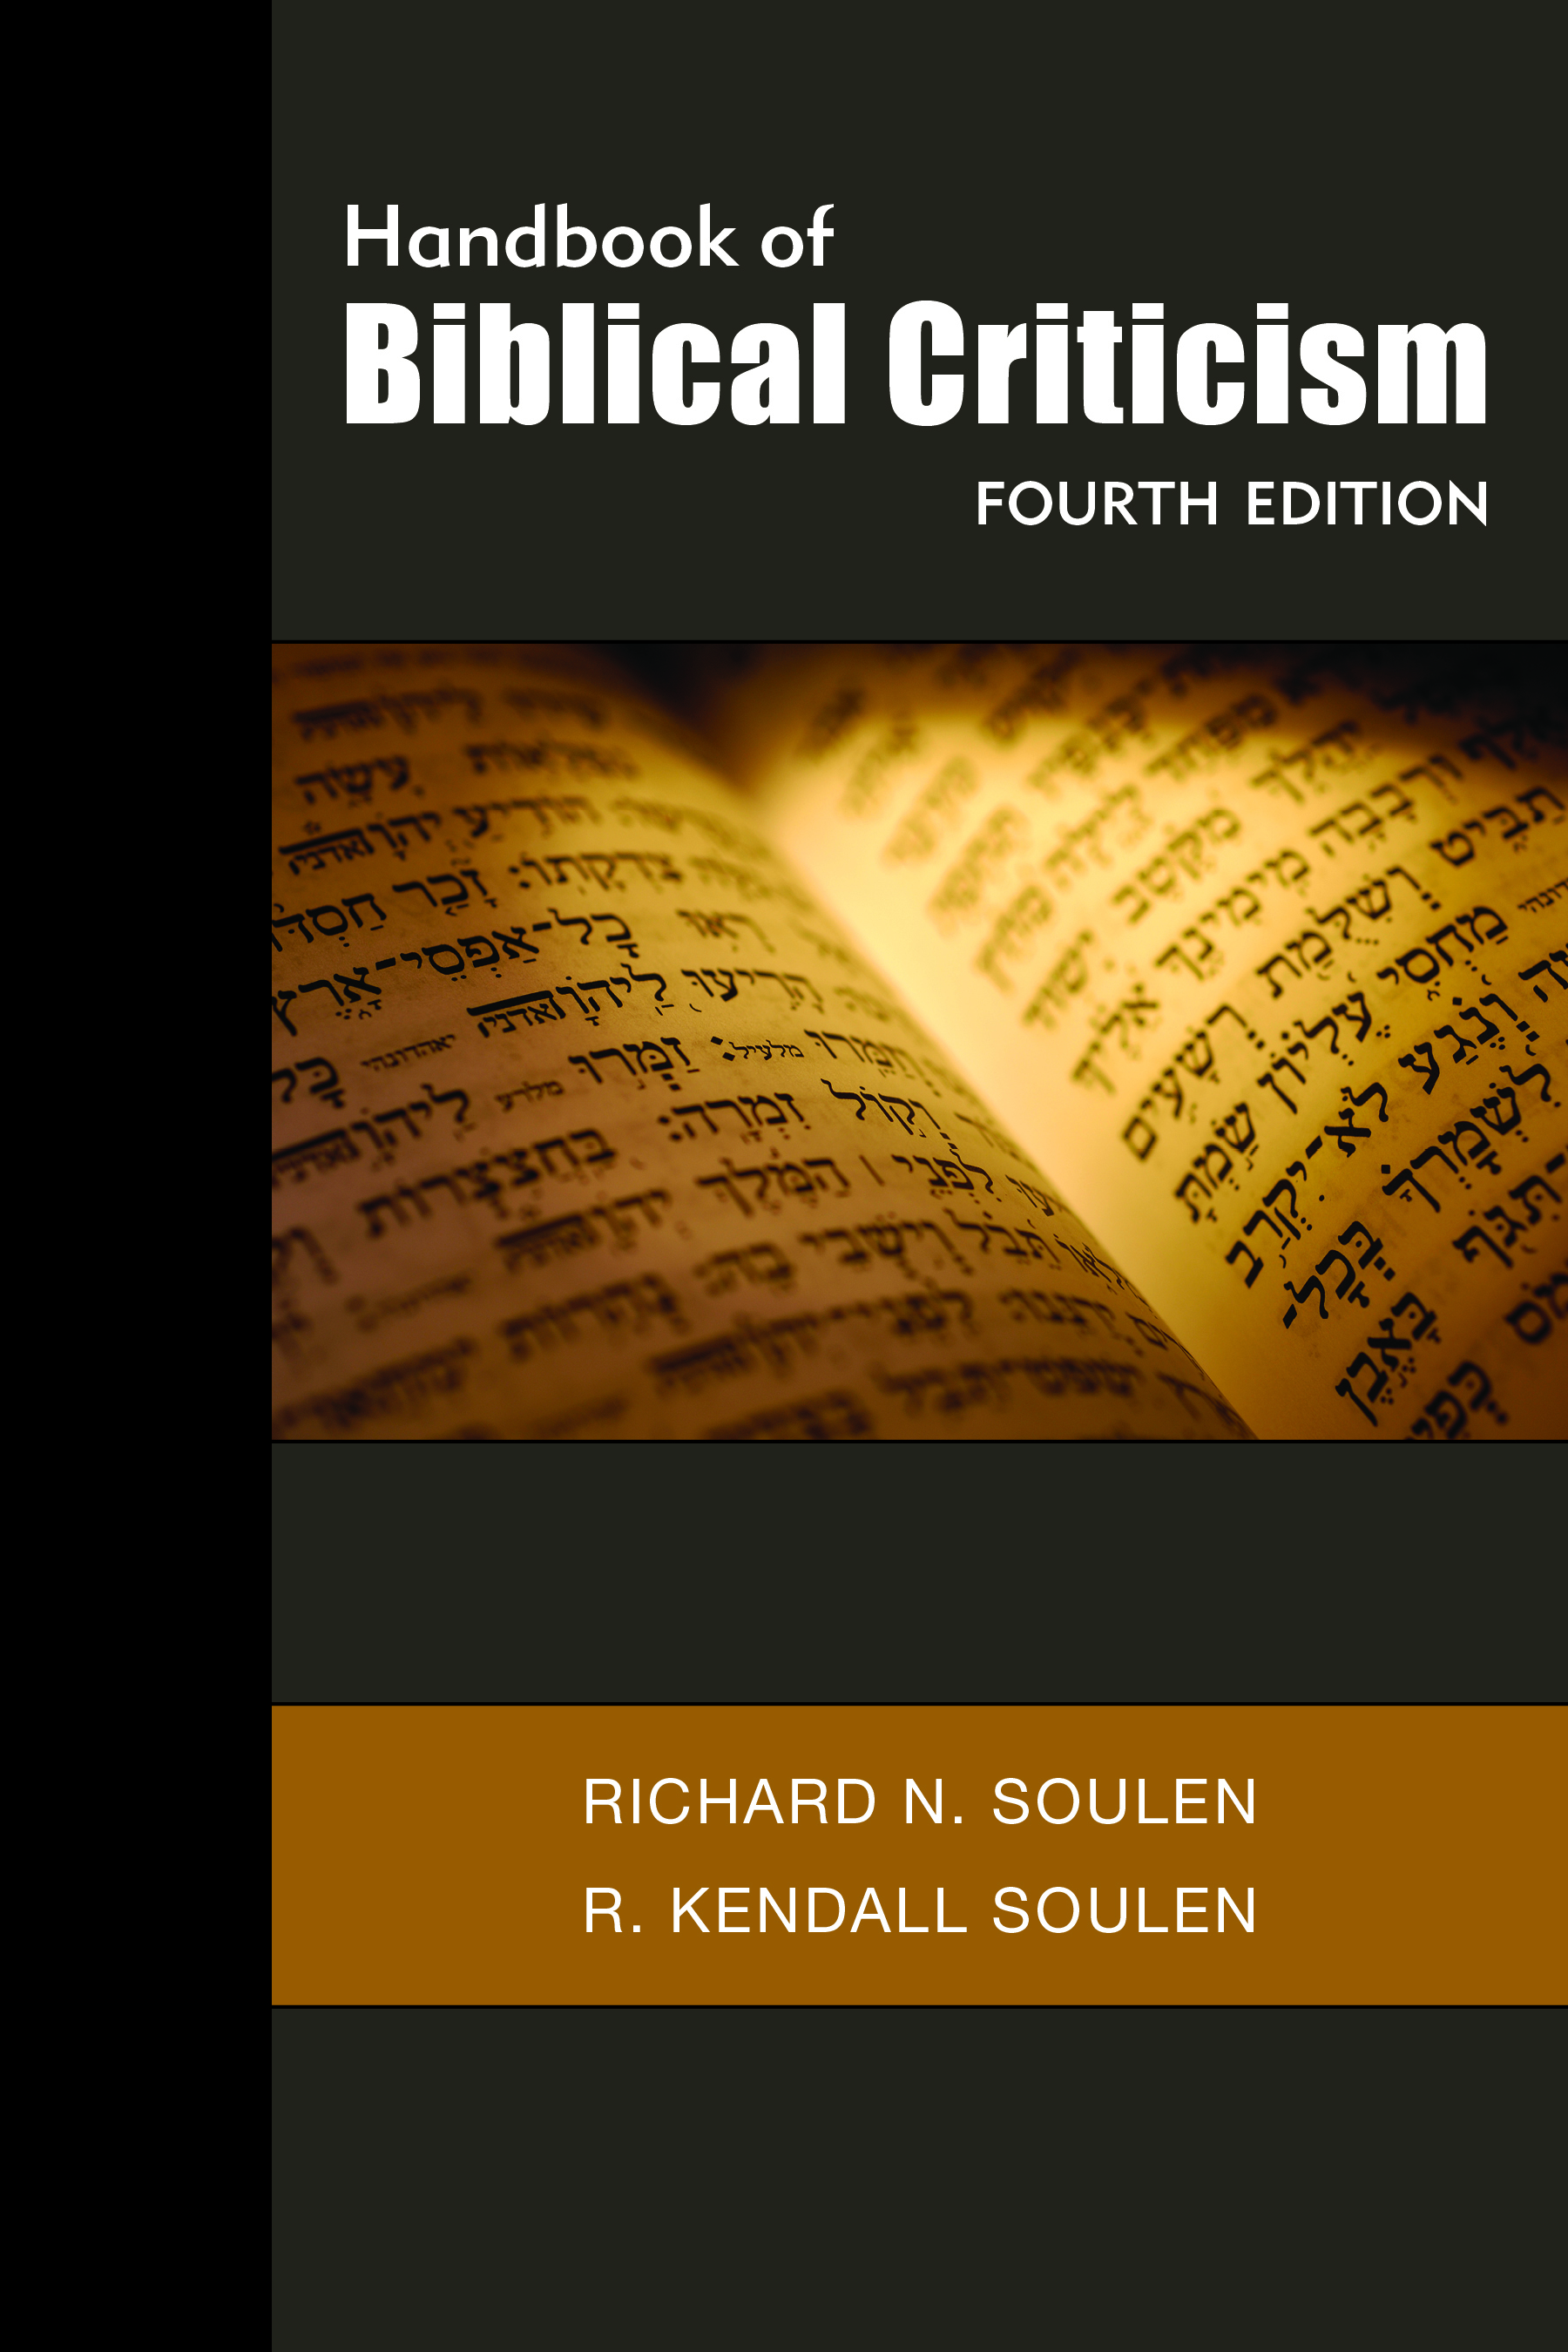 Handbook of Biblical Criticism, Fourth Edition